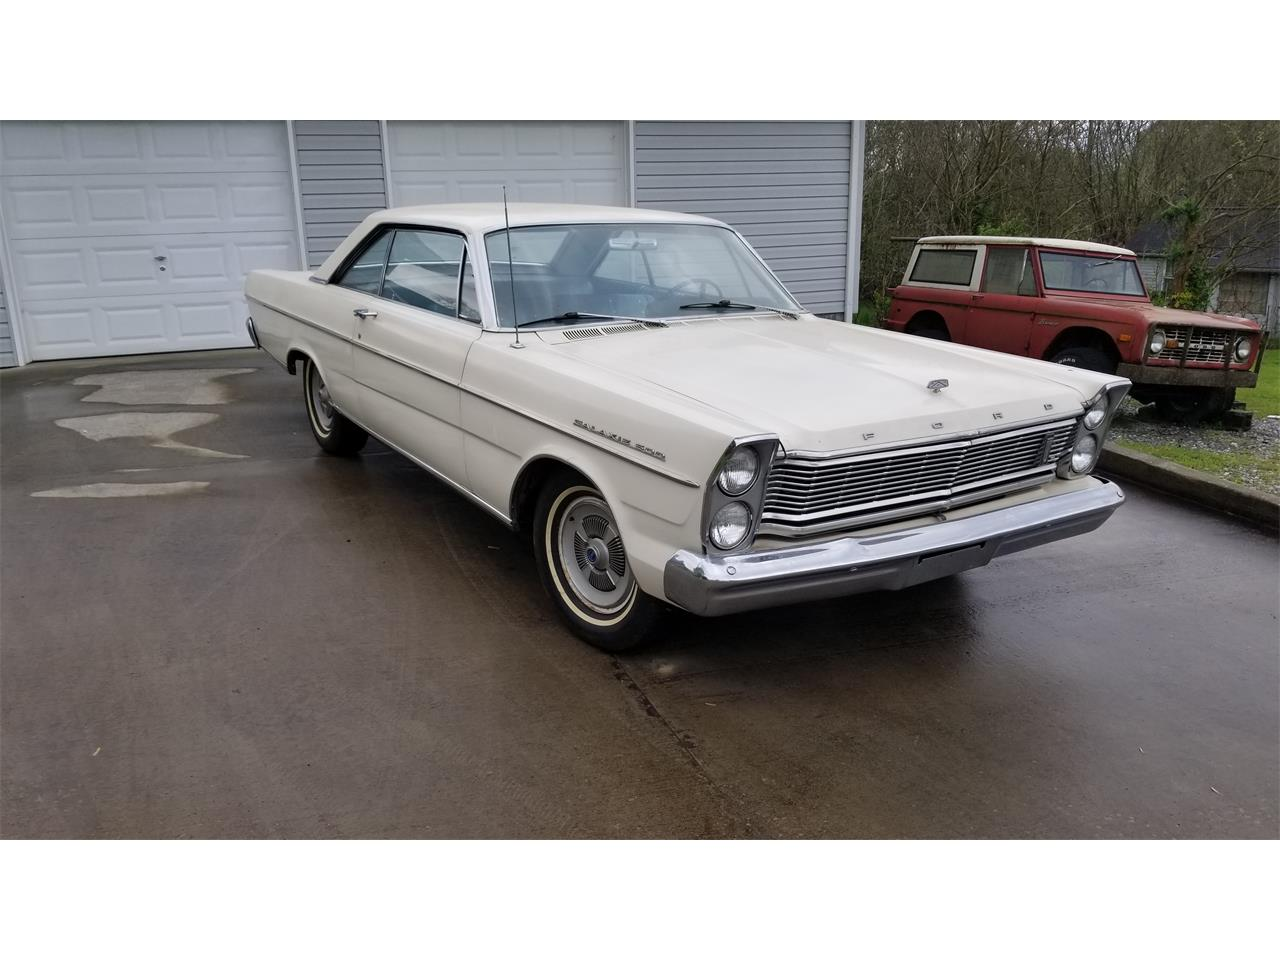 Large Picture of Classic 1965 Ford Galaxie 500 located in Tennessee - $8,000.00 Offered by a Private Seller - PXPB